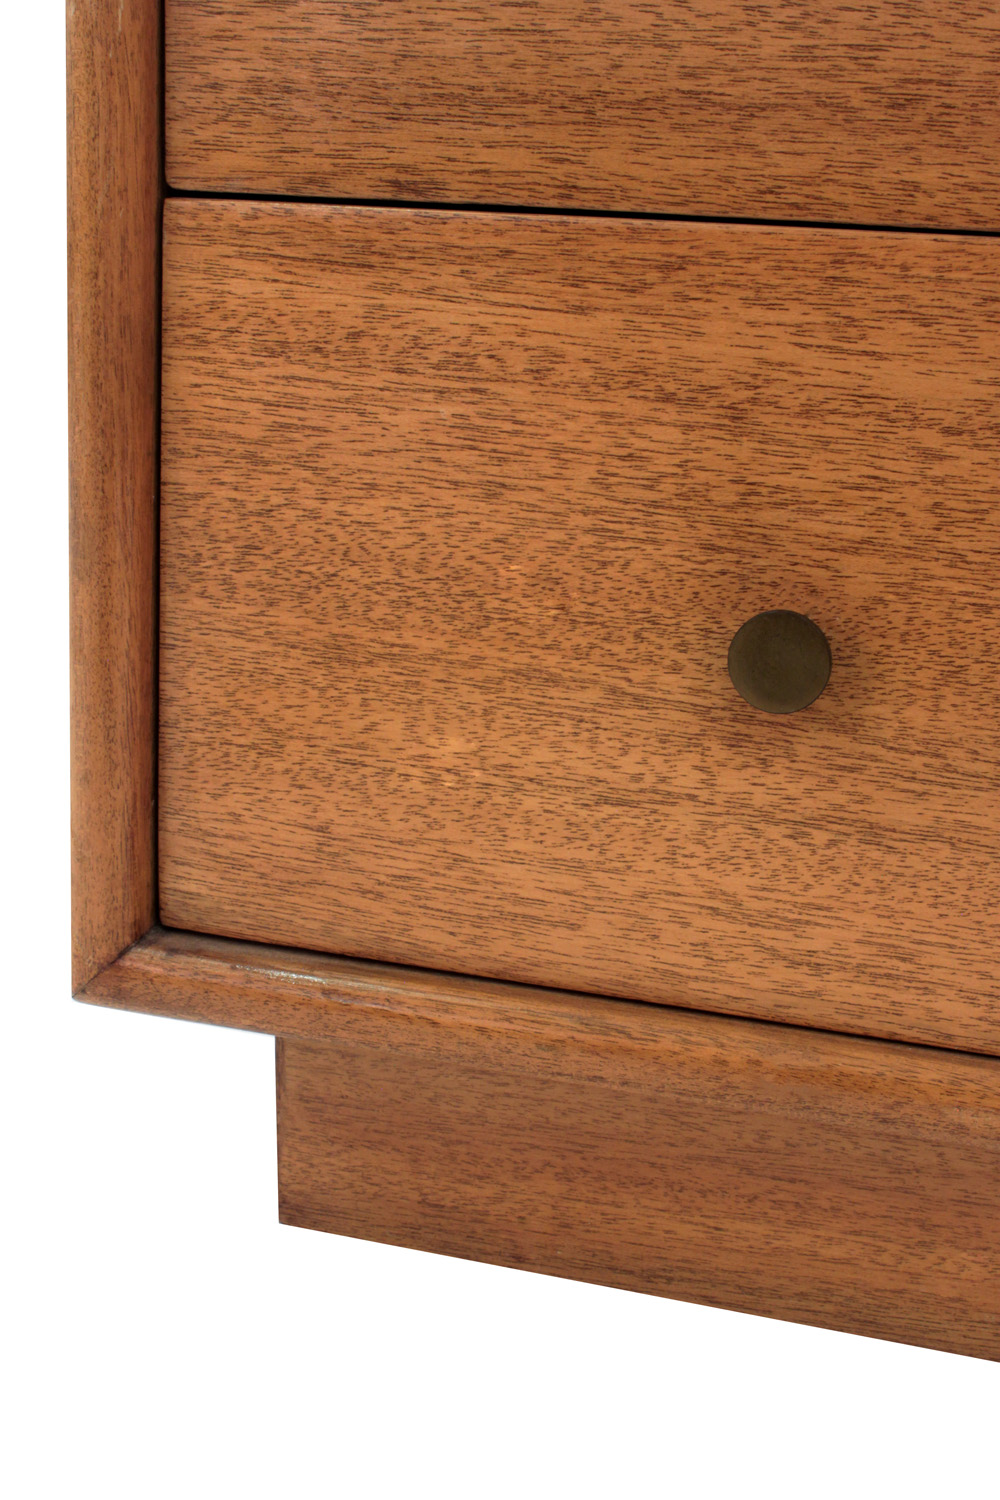 Probber 150 highboy mahg+lthr+brss 2x chestofdrawers136 detail8 hires.jpg